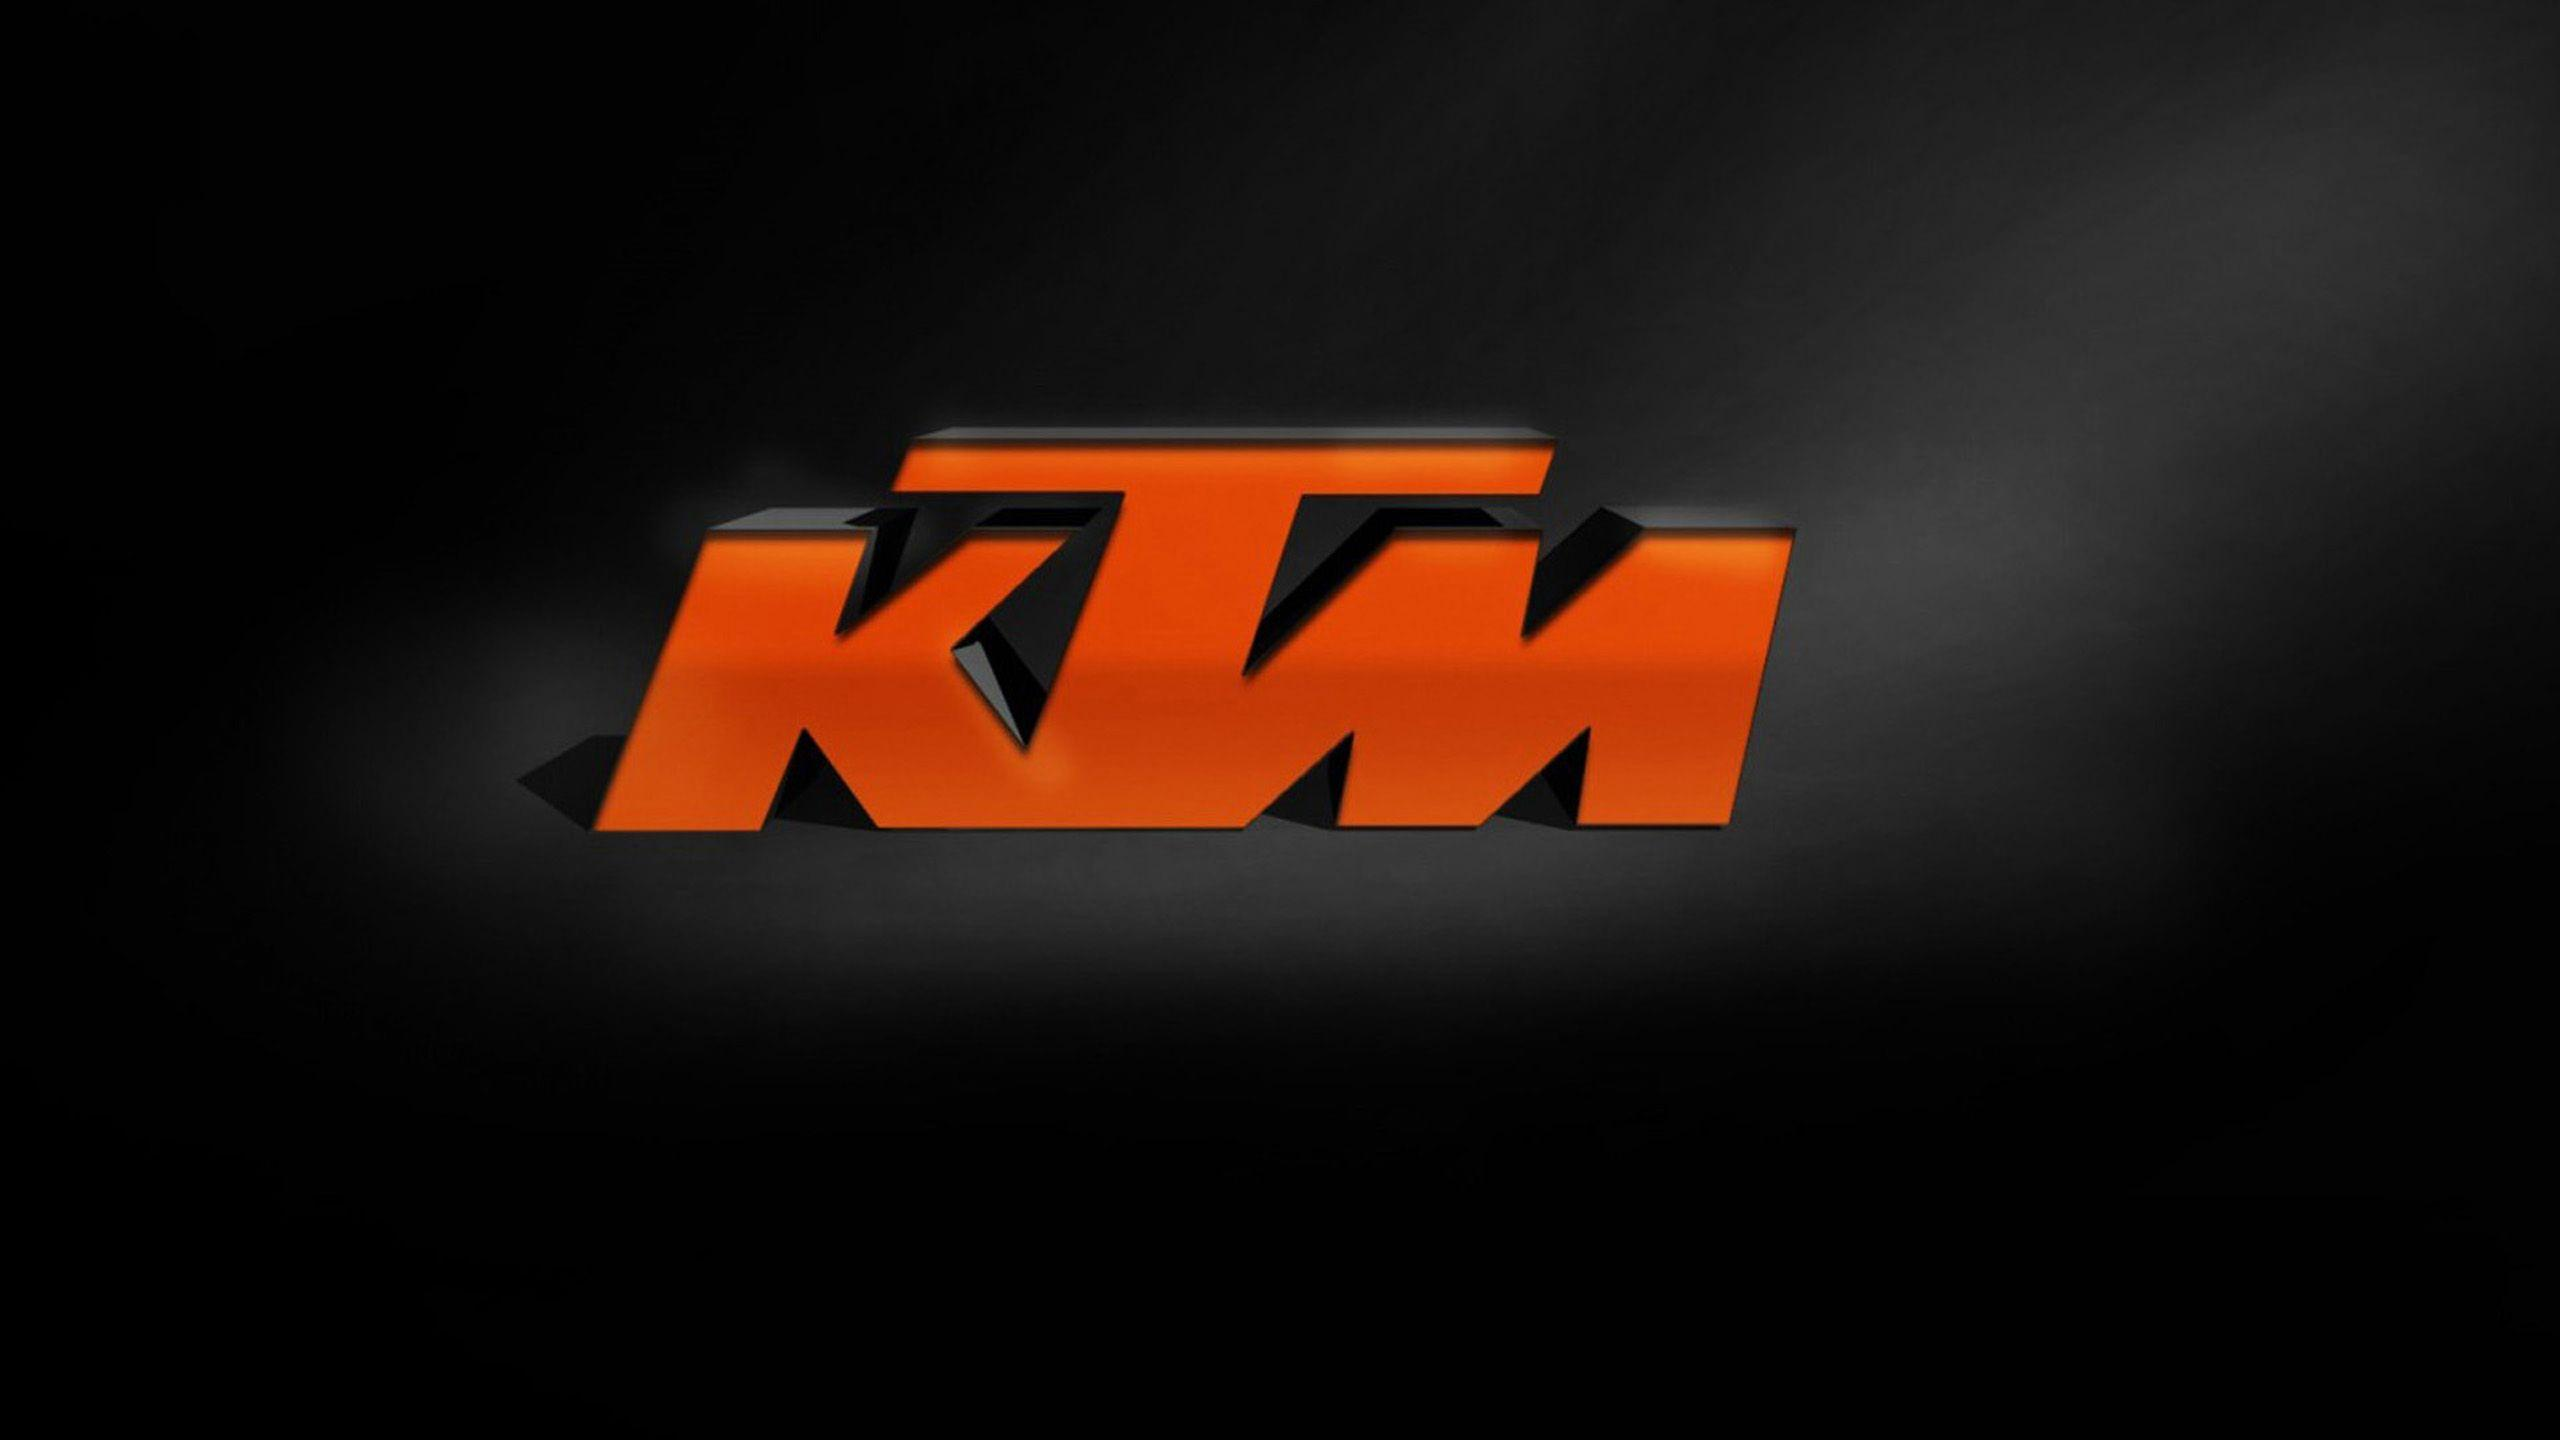 Ktm Ready To Race Logo Wallpaper